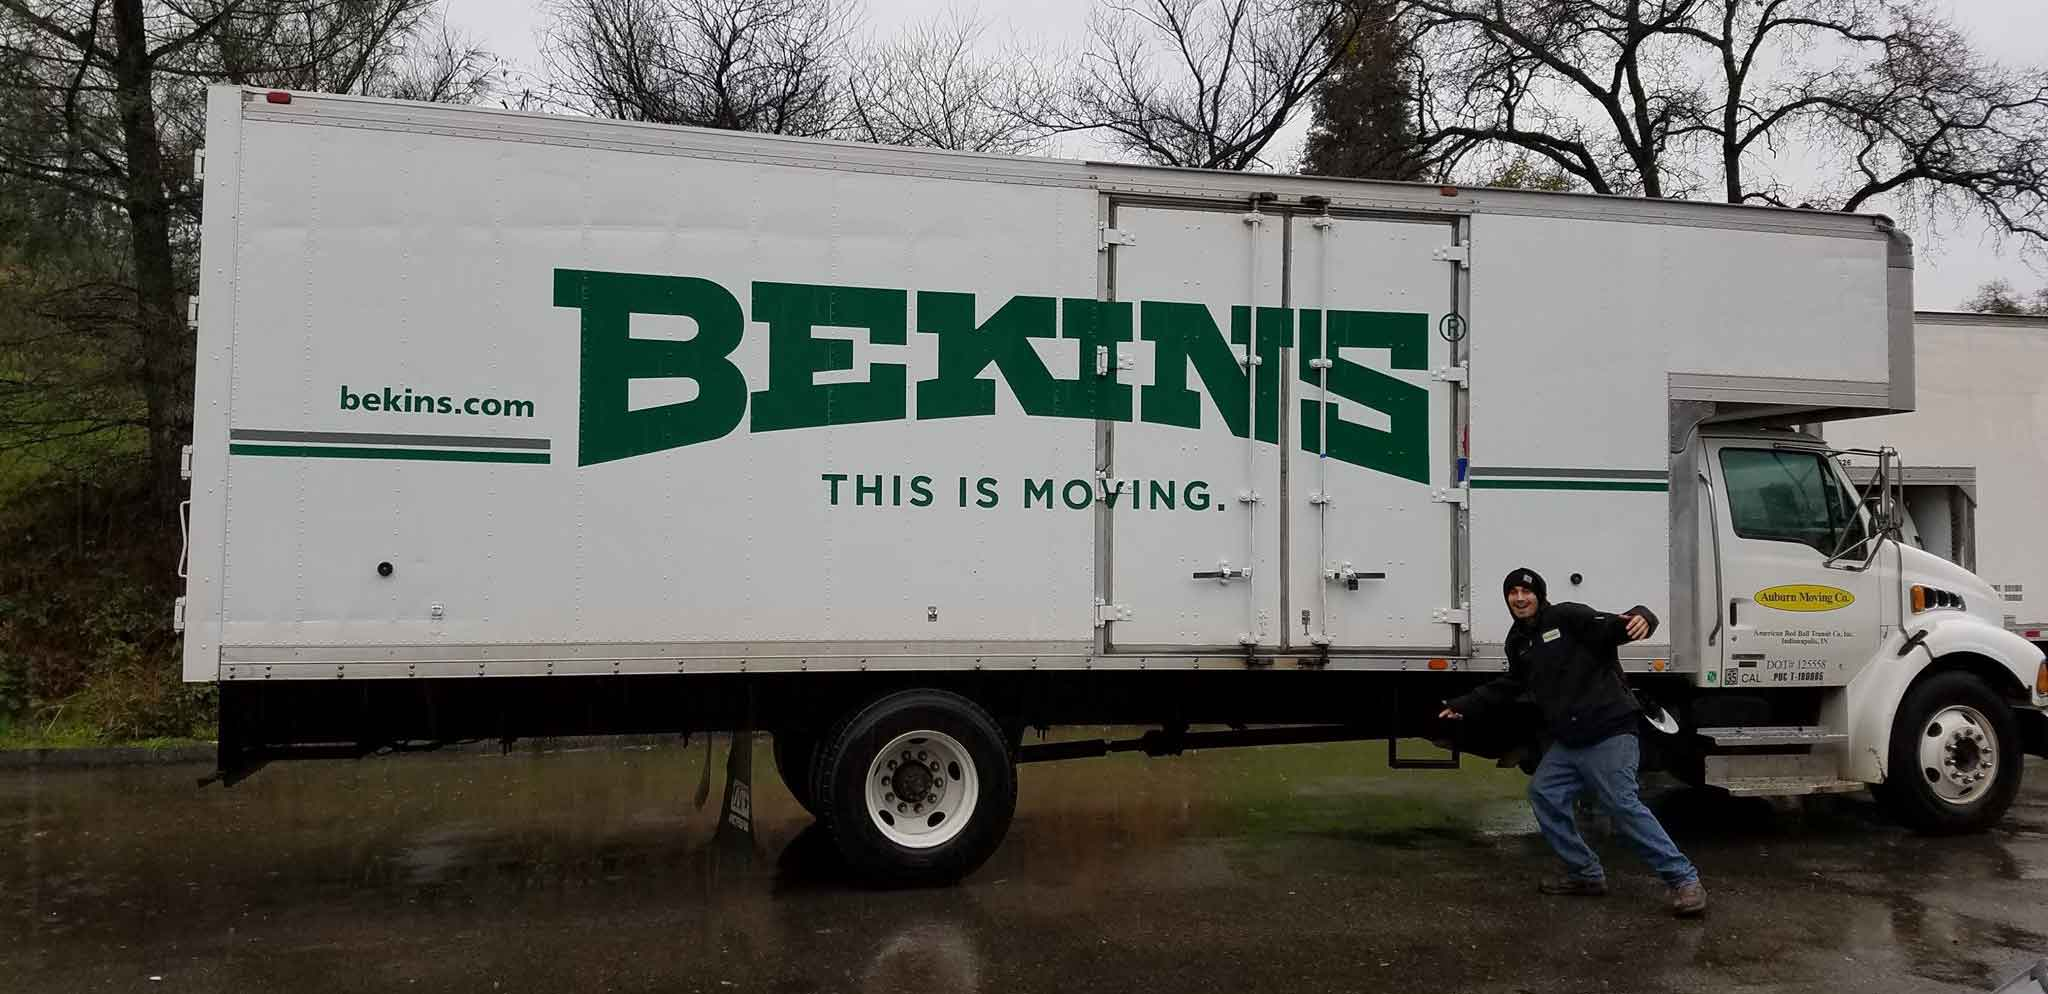 Moving Services In Your Area. We were unable to find any pre-screened Moving Companies & Services in your area, but we may have pros in another category that can take on your project.